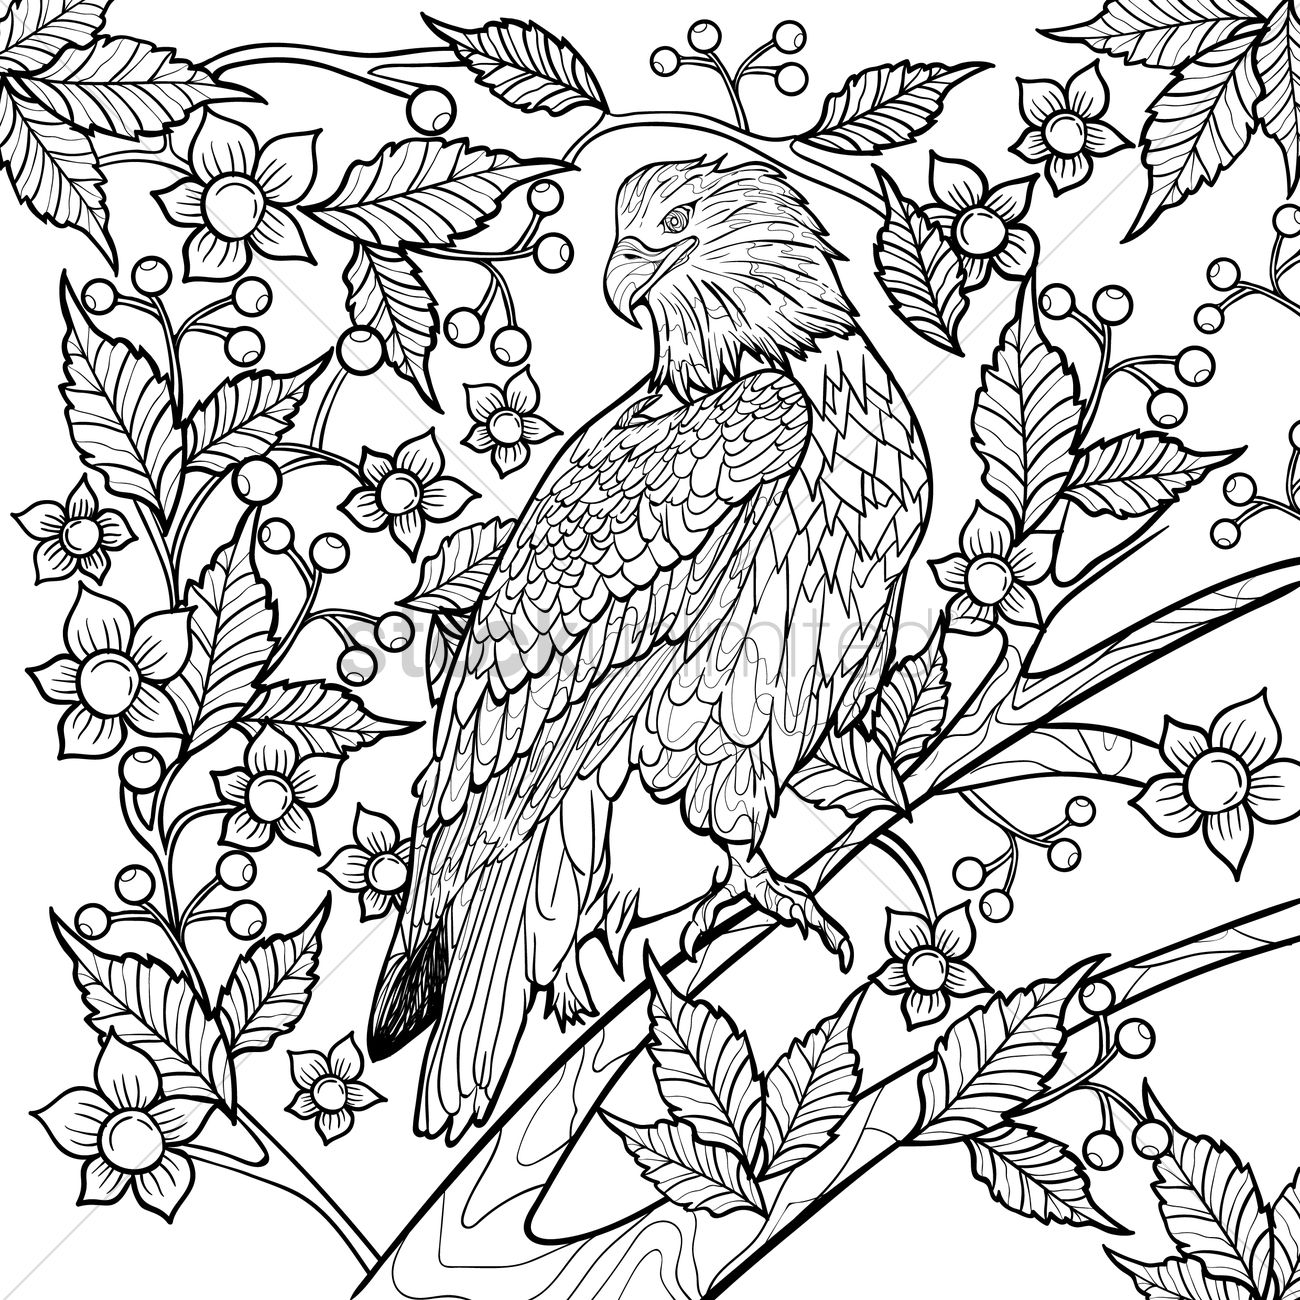 intricate eagle design vector image 1999558 stockunlimited